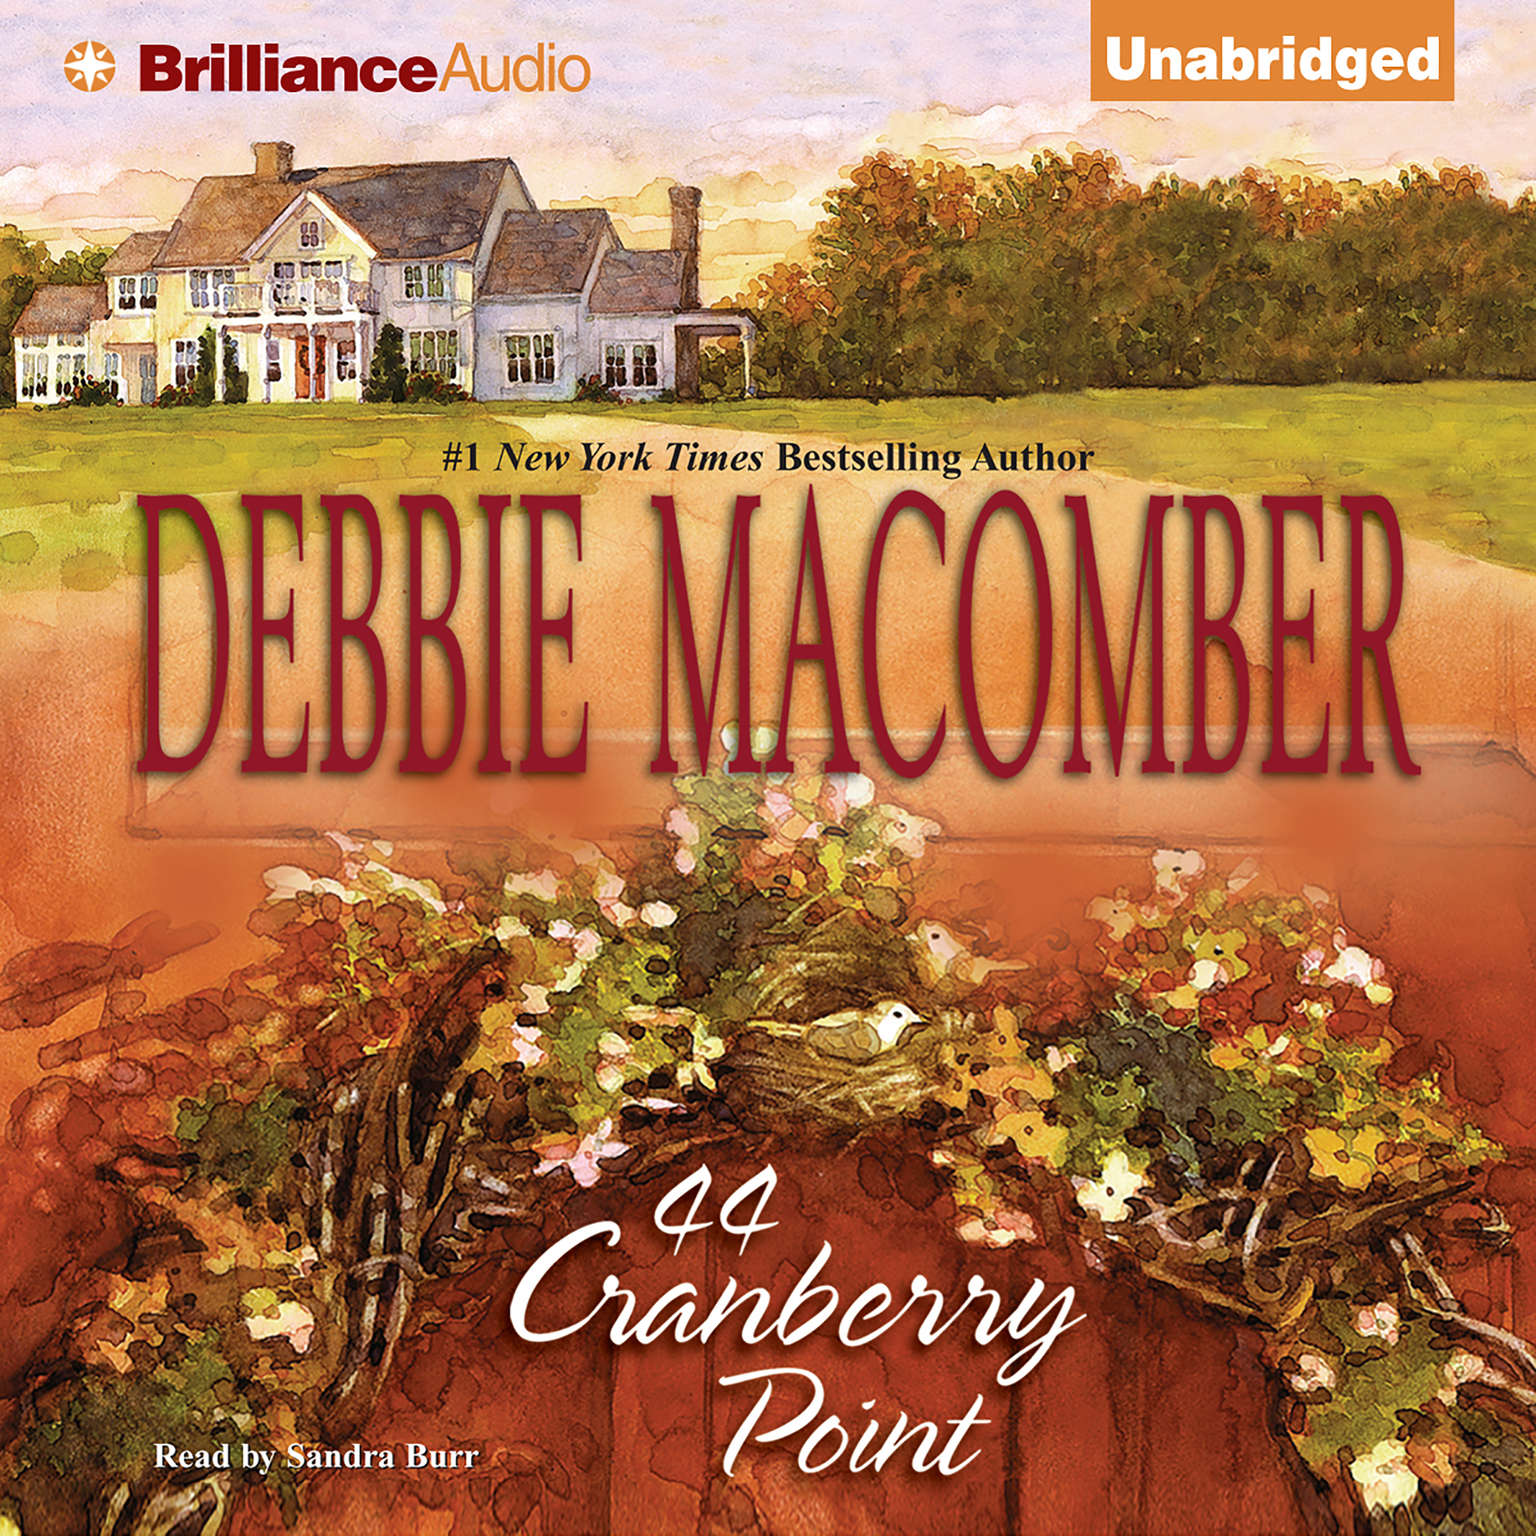 Printable 44 Cranberry Point Audiobook Cover Art